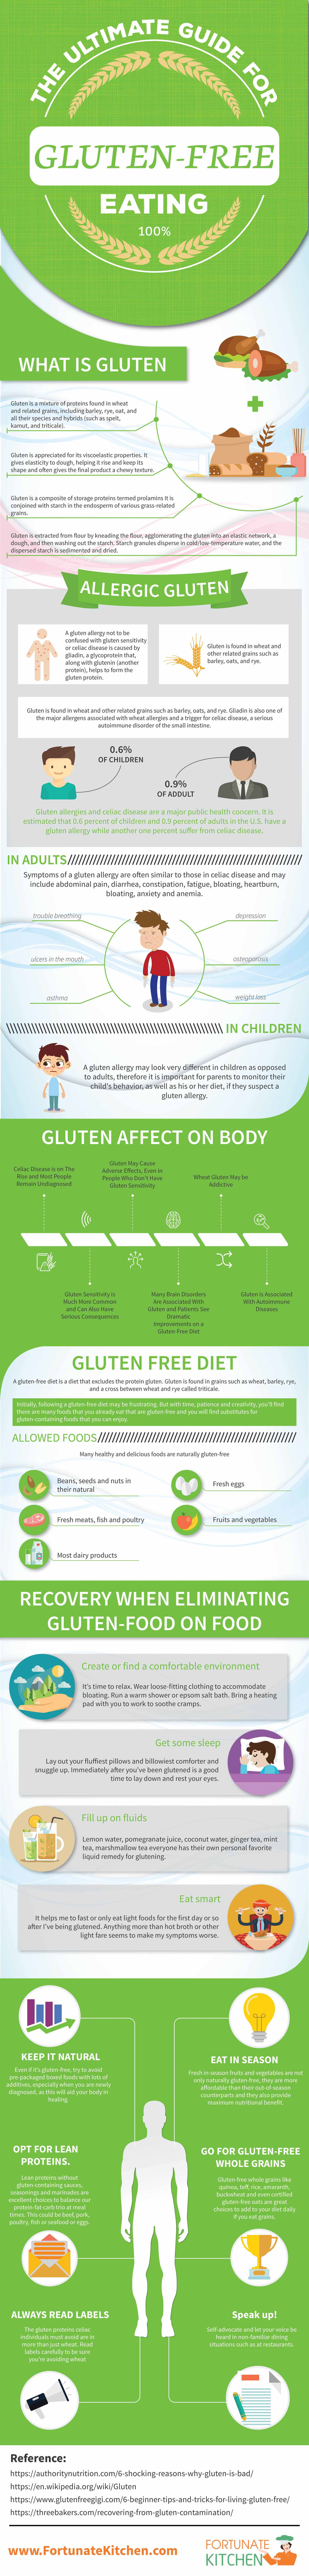 easy-gluten-free-living-for-every-day-life-infographic